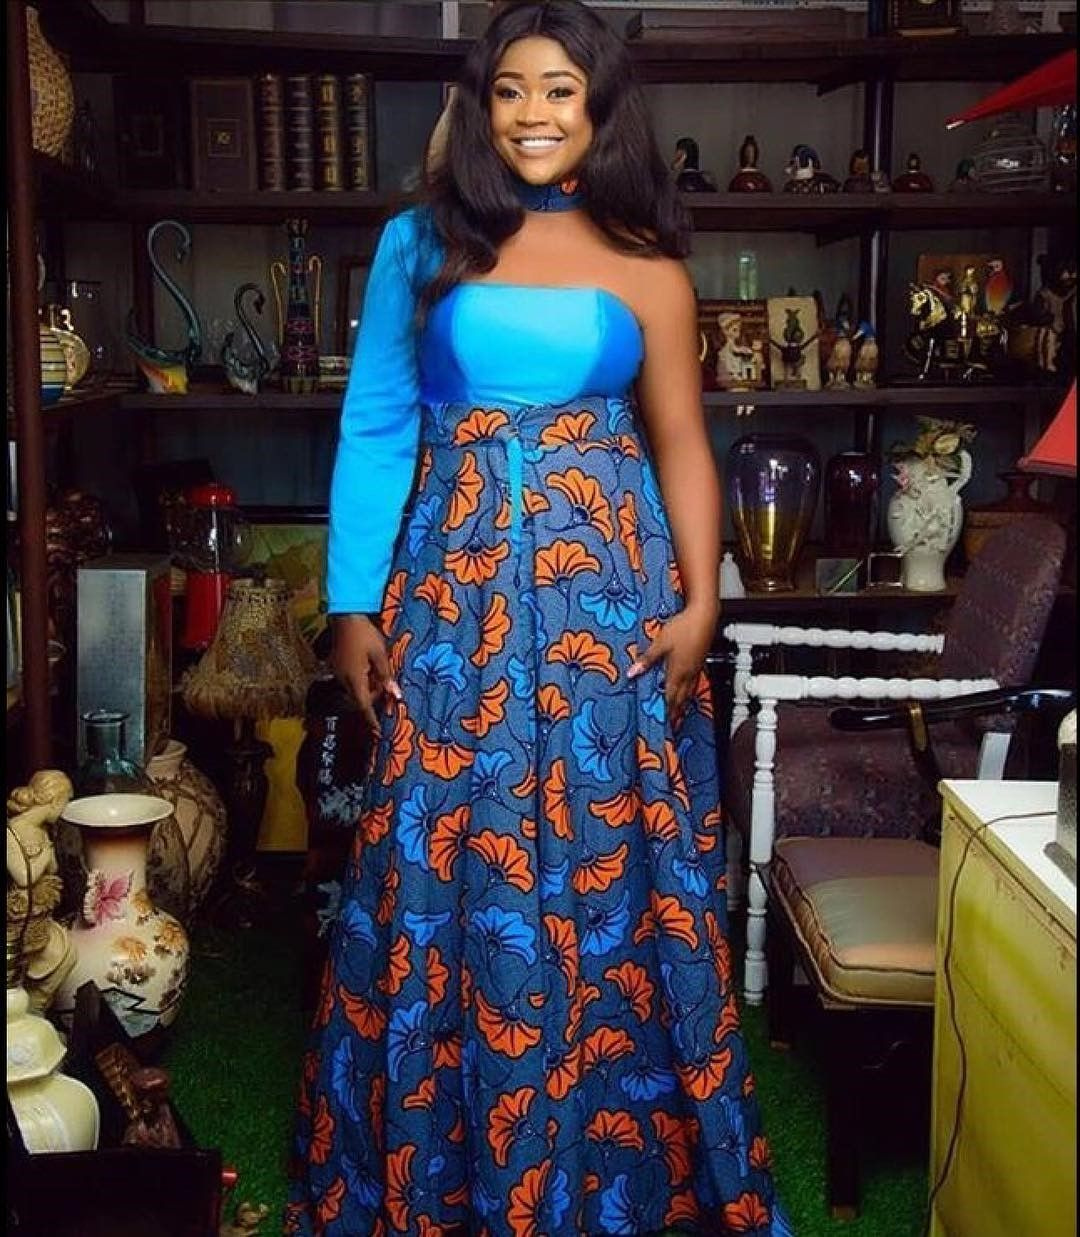 There are several ways to enable oneself look fabulous with an Ankara fabric, Even if you are reasoning on what to create and slay with an aso ebi style. Nigerian Yoruba dress styles for weddings arrive in a good many patterns and designs.   The Ankara dress styles beauty of this print is that it comes in many designs and textures. Ankara will permit you make a grant of any fabric without losing the Ankara dress styles flair. #nigeriandressstyles There are several ways to enable oneself look fab #nigeriandressstyles